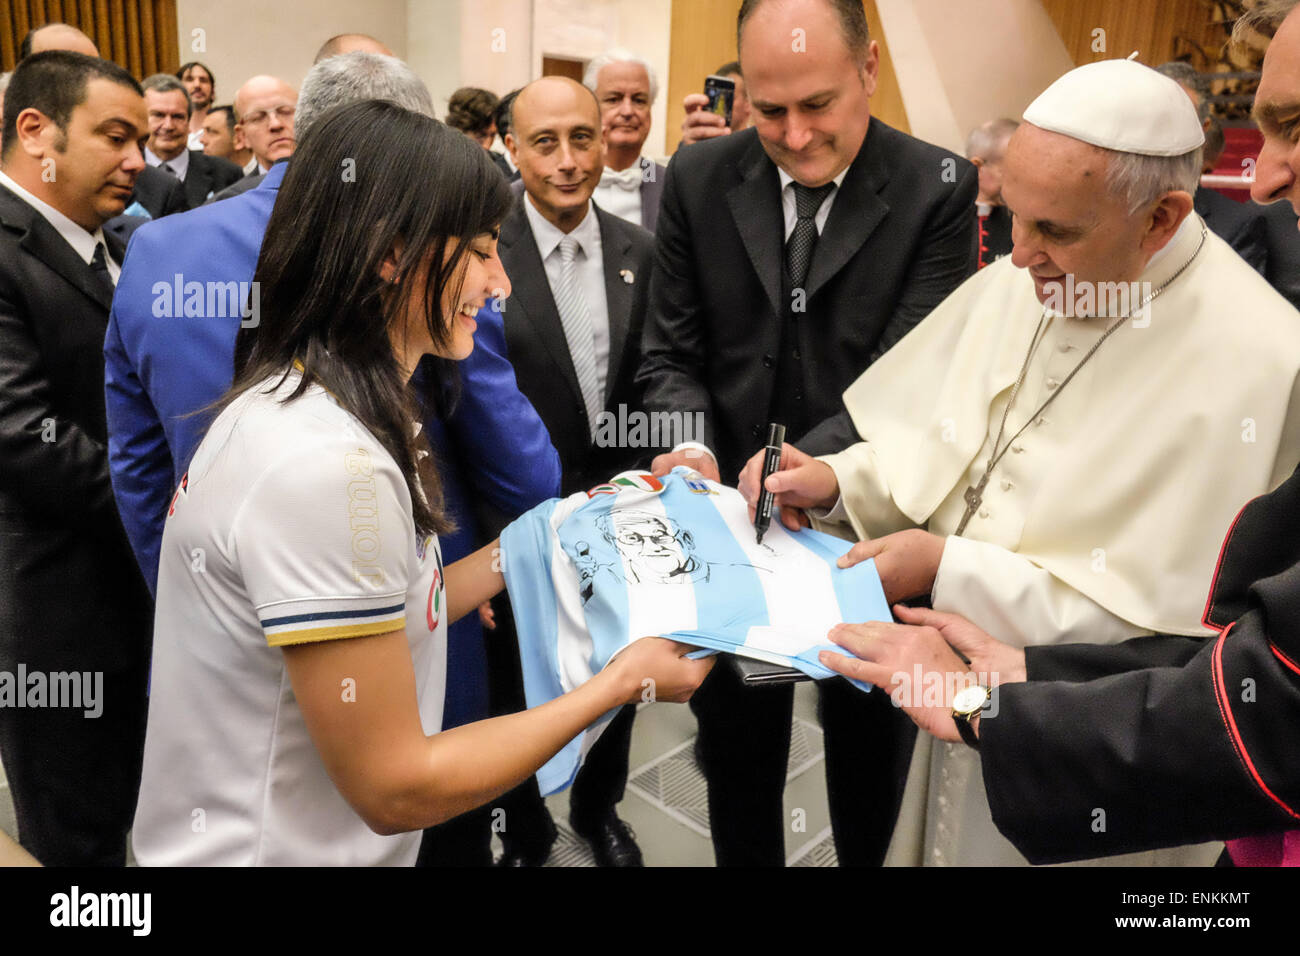 Nervi Hall, Vatican City. 7th May, 2015. the football club SS Lazio in Audience from Pope Francis. Credit:  Realy - Stock Image